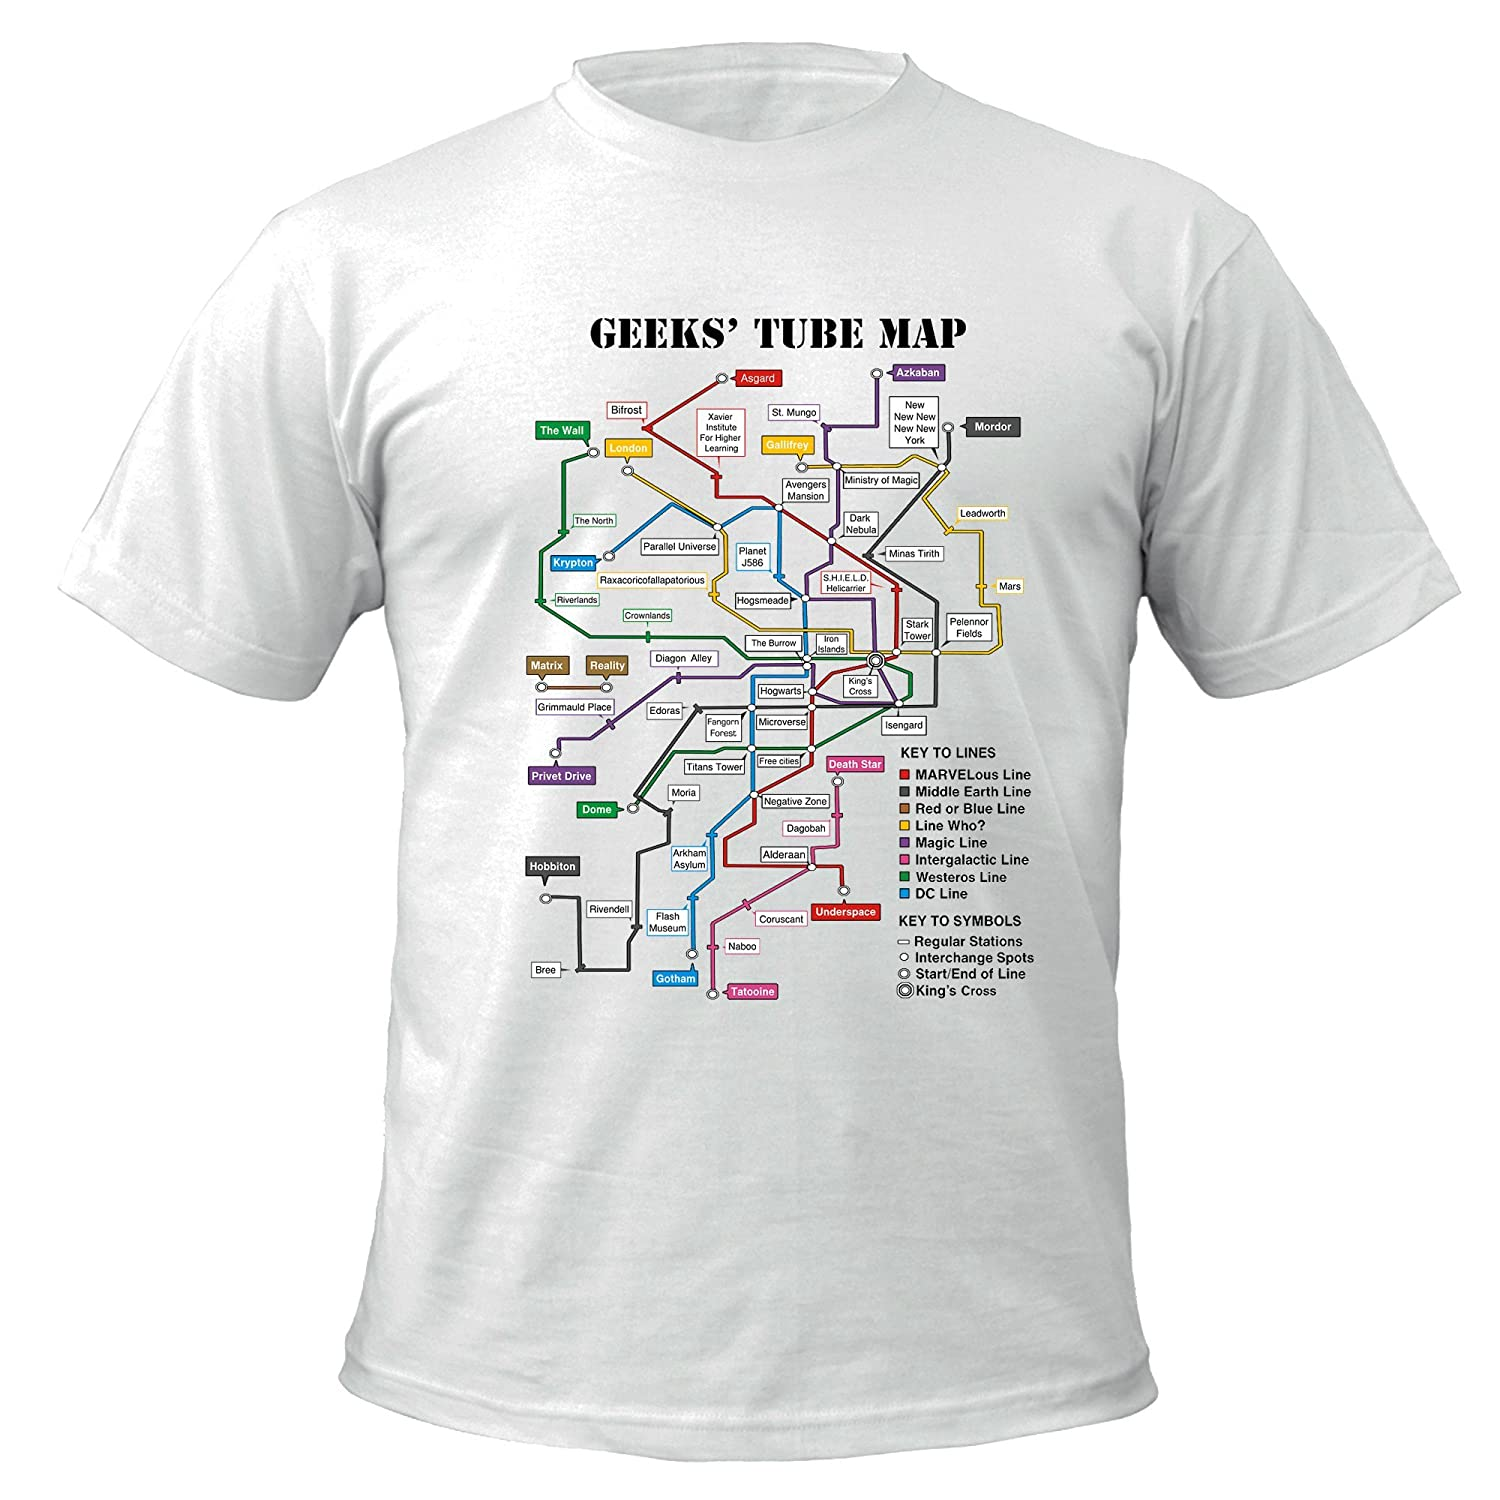 Geeks Tube Map T-shirt